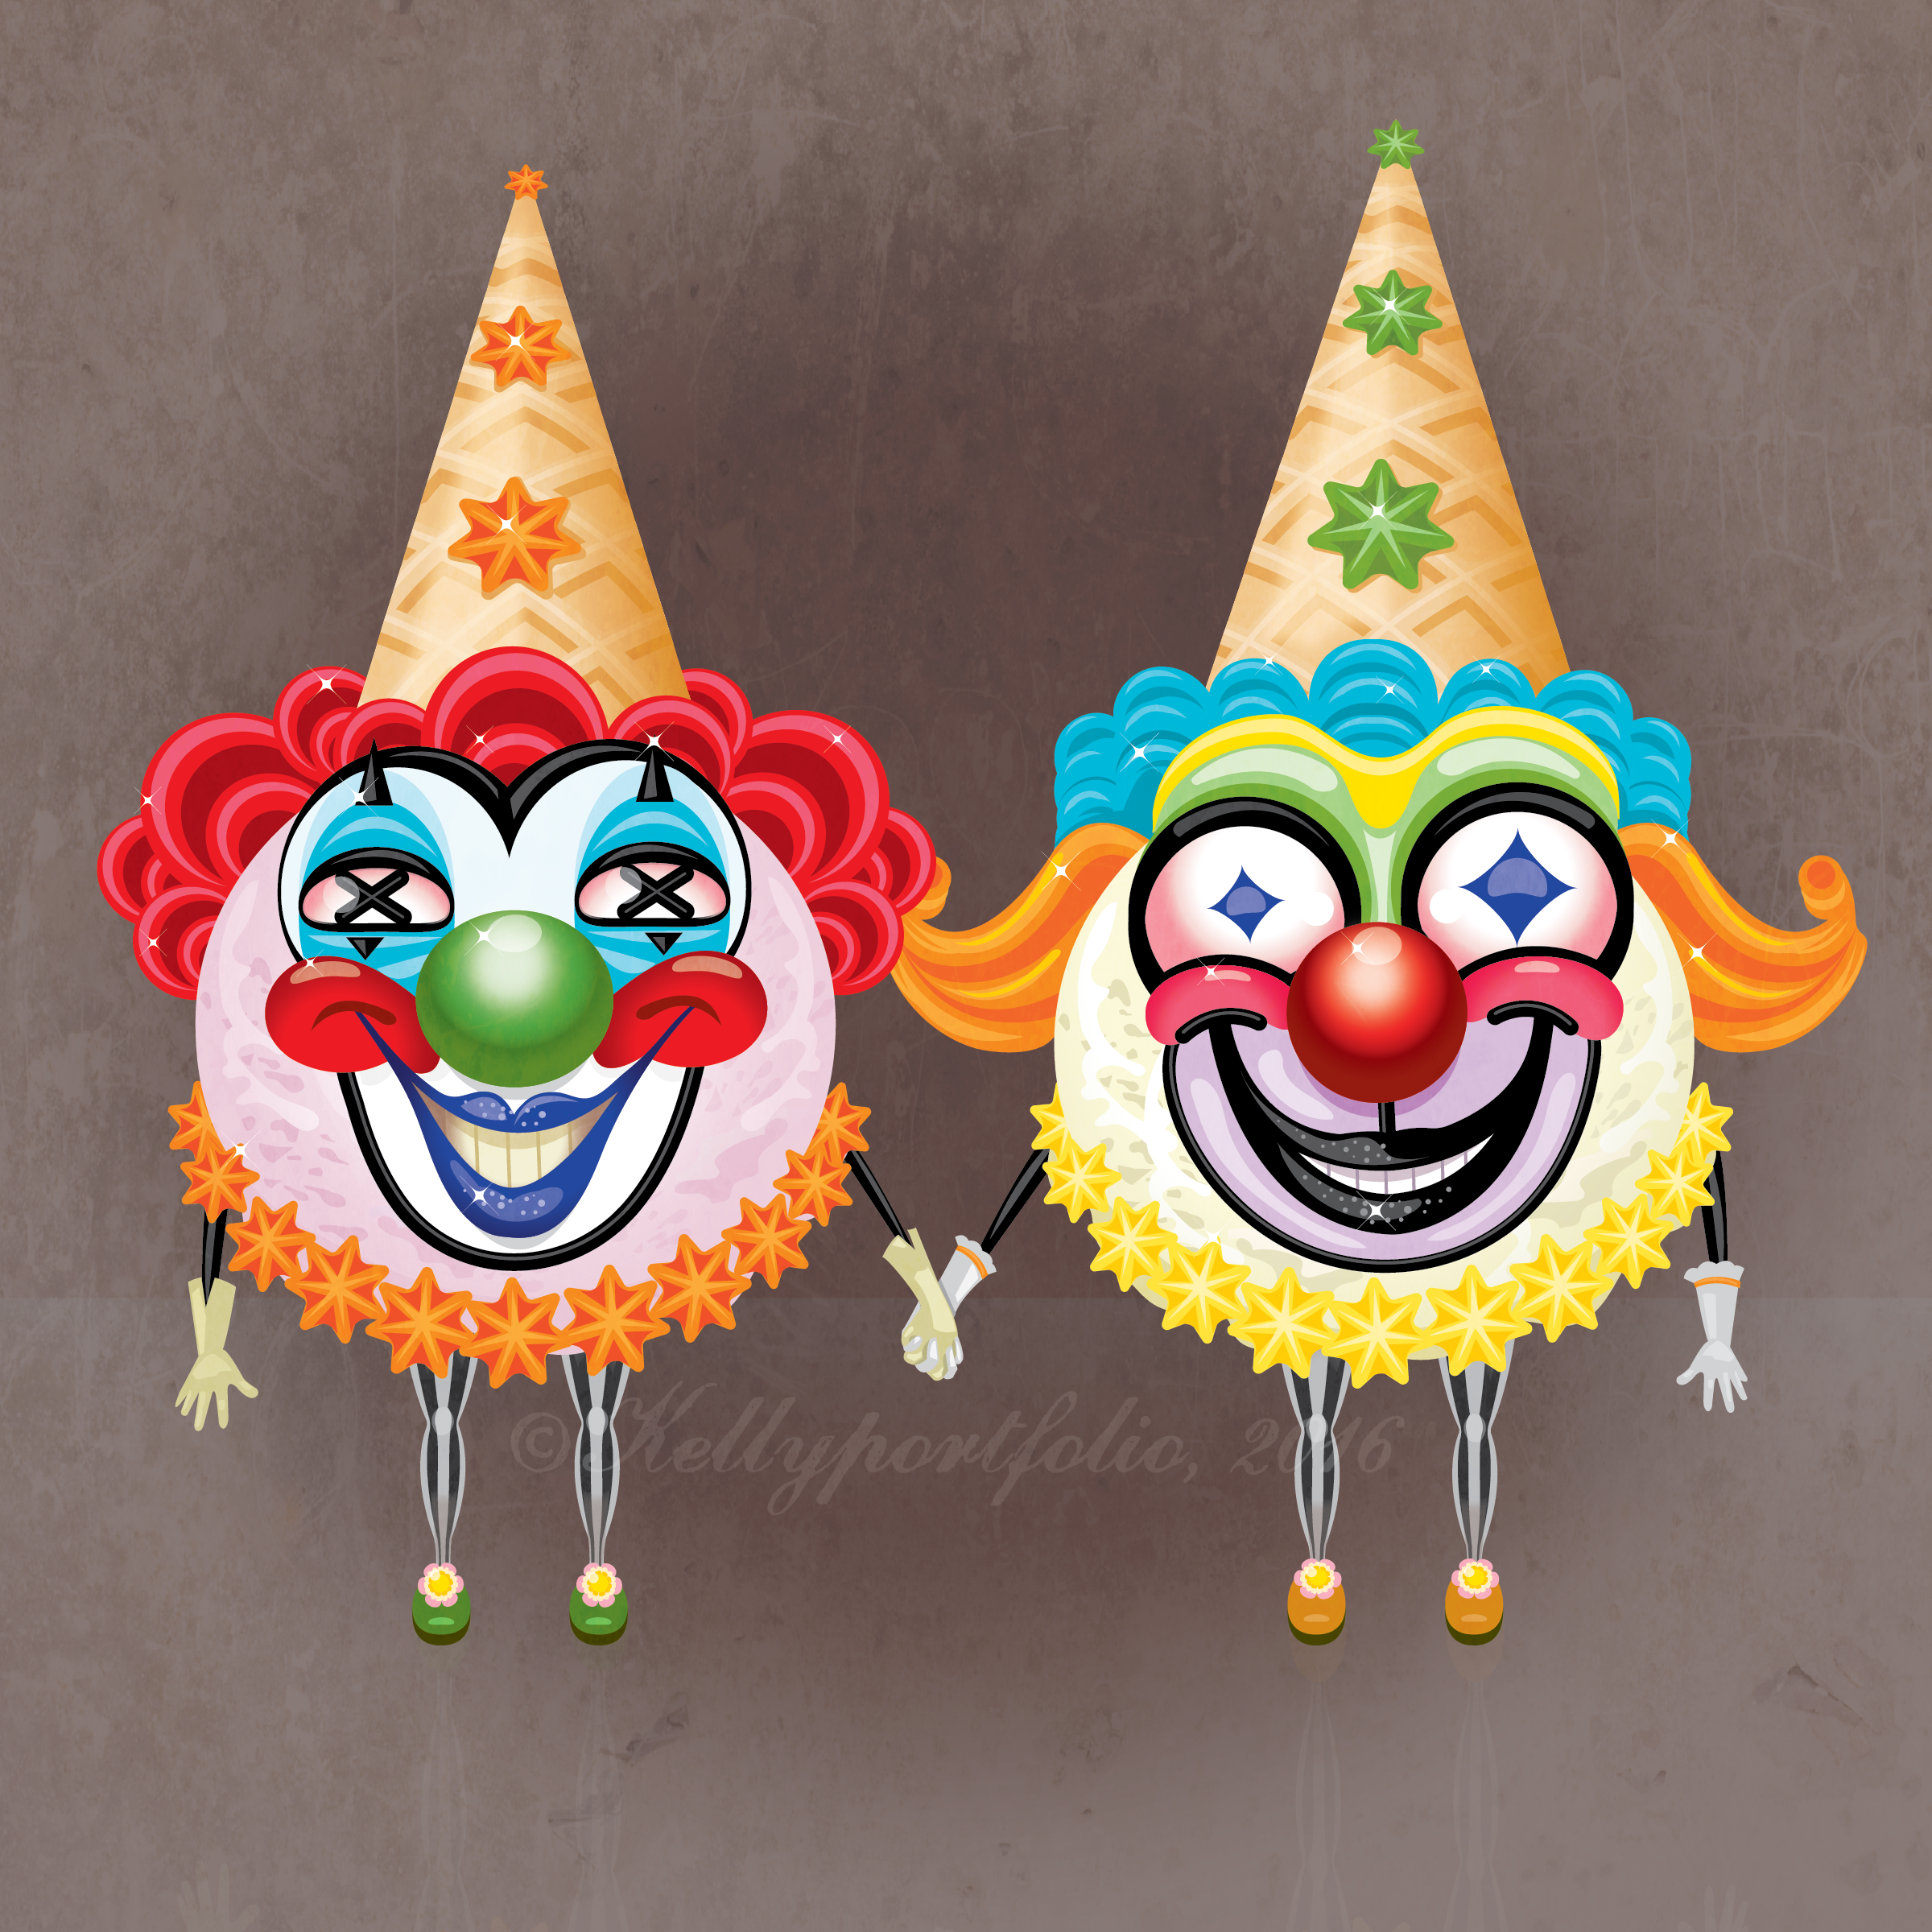 Clowns_bright-01.png